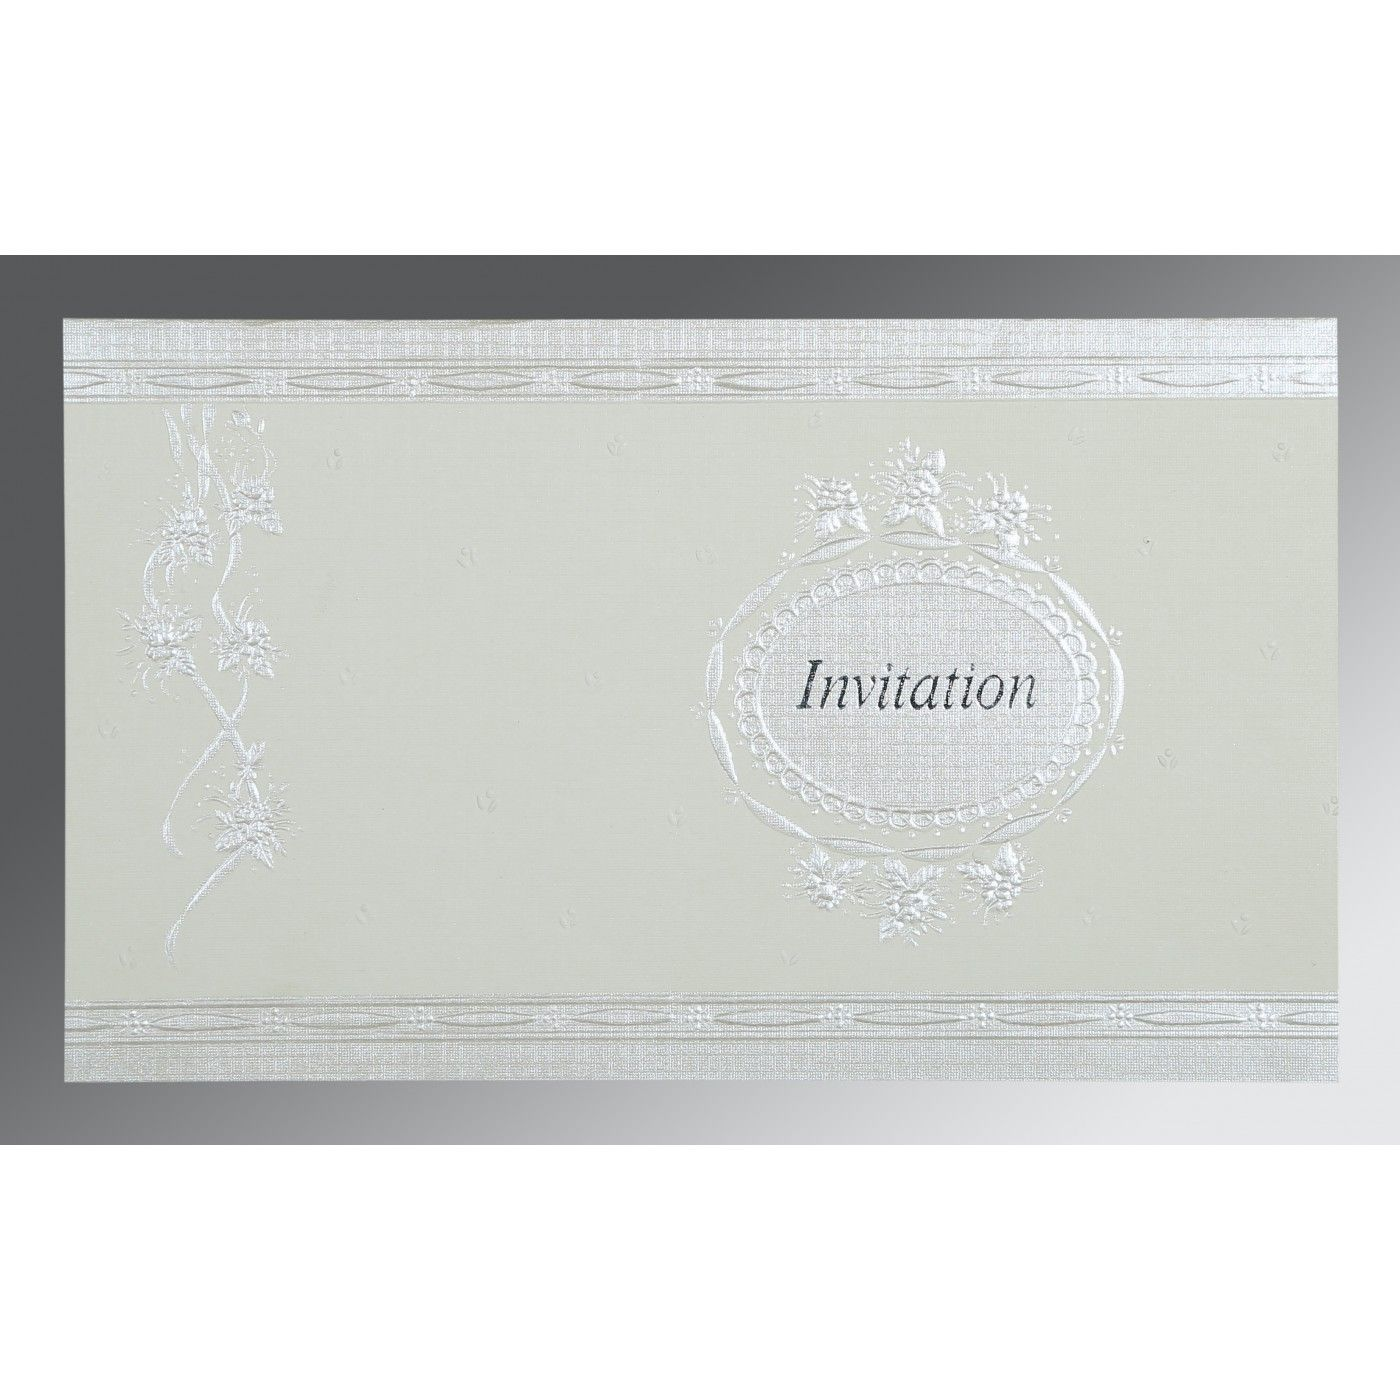 OFF-WHITE MATTE FOIL STAMPED WEDDING CARD : CSO-1328 - IndianWeddingCards